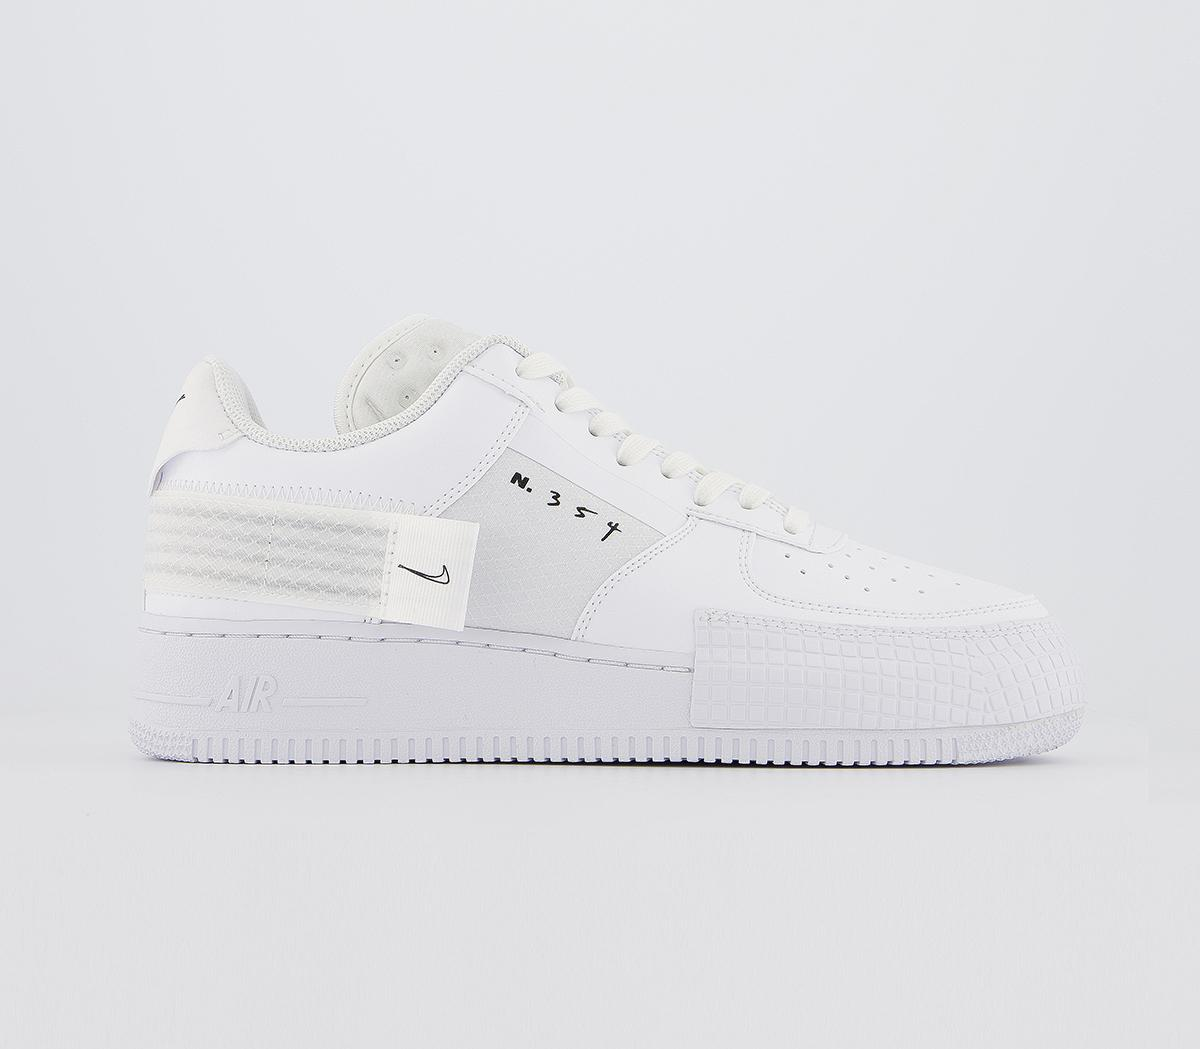 Nike Air Force 1 Type Trainers White Black White His trainers